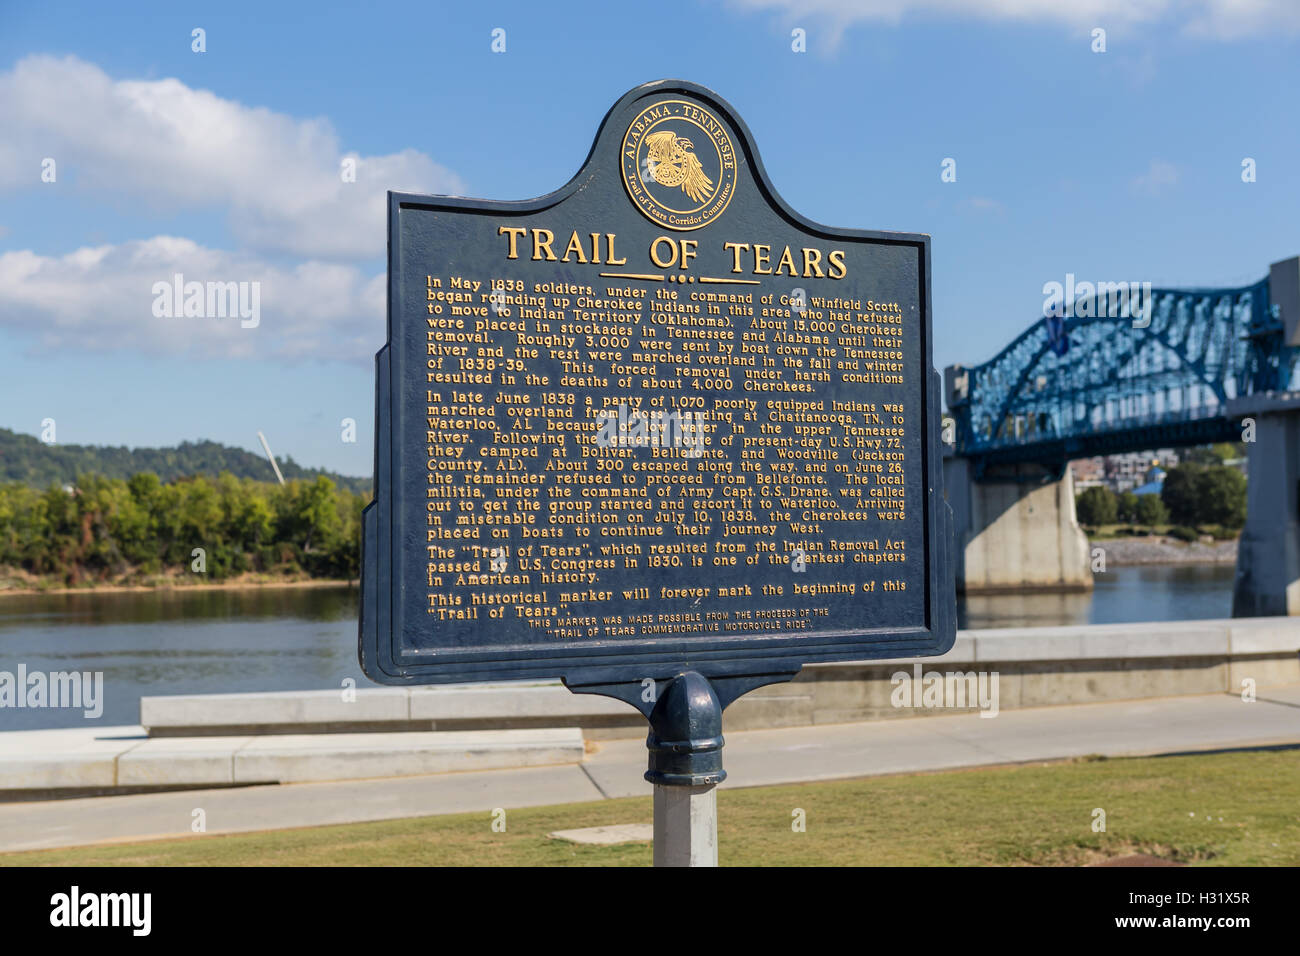 A historical marker designates the beginning of the Trail of Tears at Ross's Landing in Chattanooga, Tennessee. - Stock Image